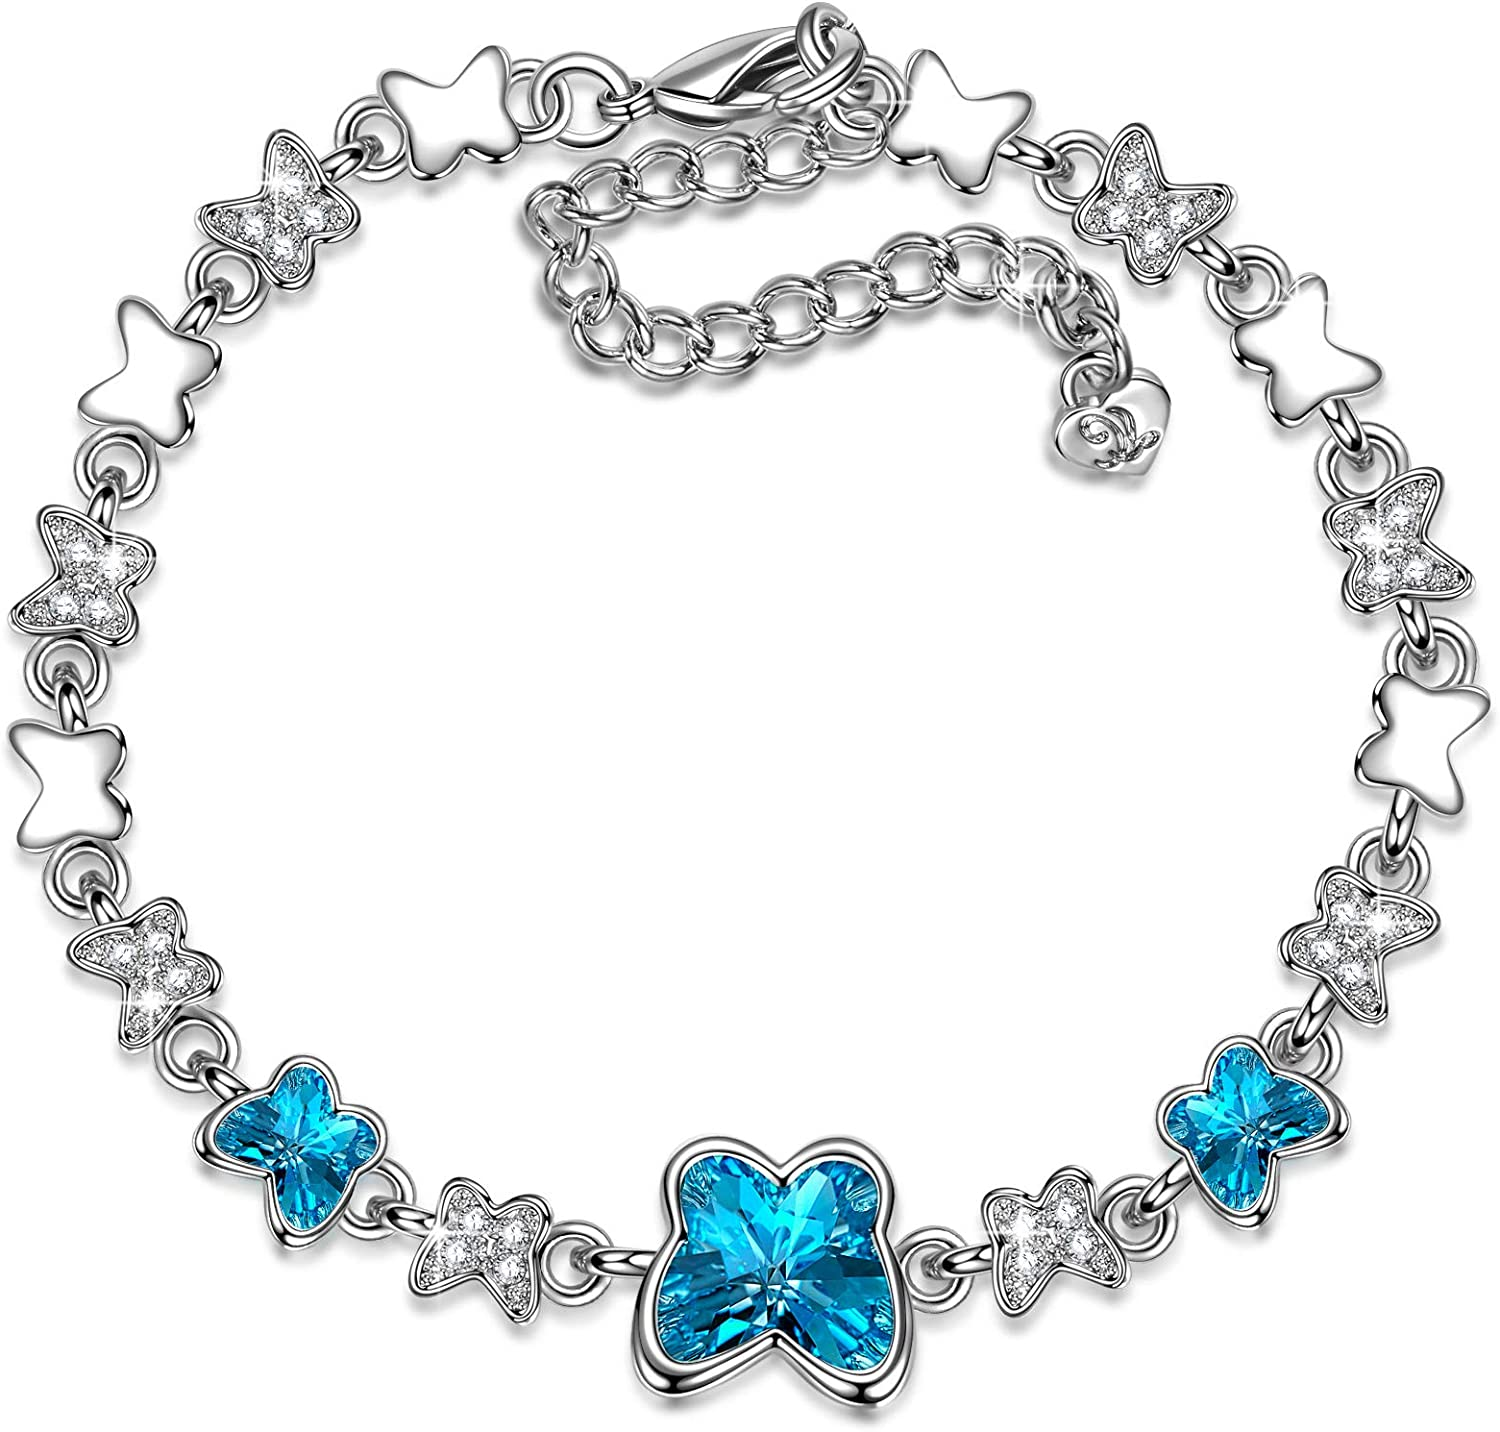 LADY COLOUR Mother's Day Jewelry Gifts for Mom, Blue Butterfly Stylish Swarovski Crystal Necklace/Bracelet for Women, Hypoallergenic Jewelry Gift Box Packing, Nickel Free Passed SGS Test